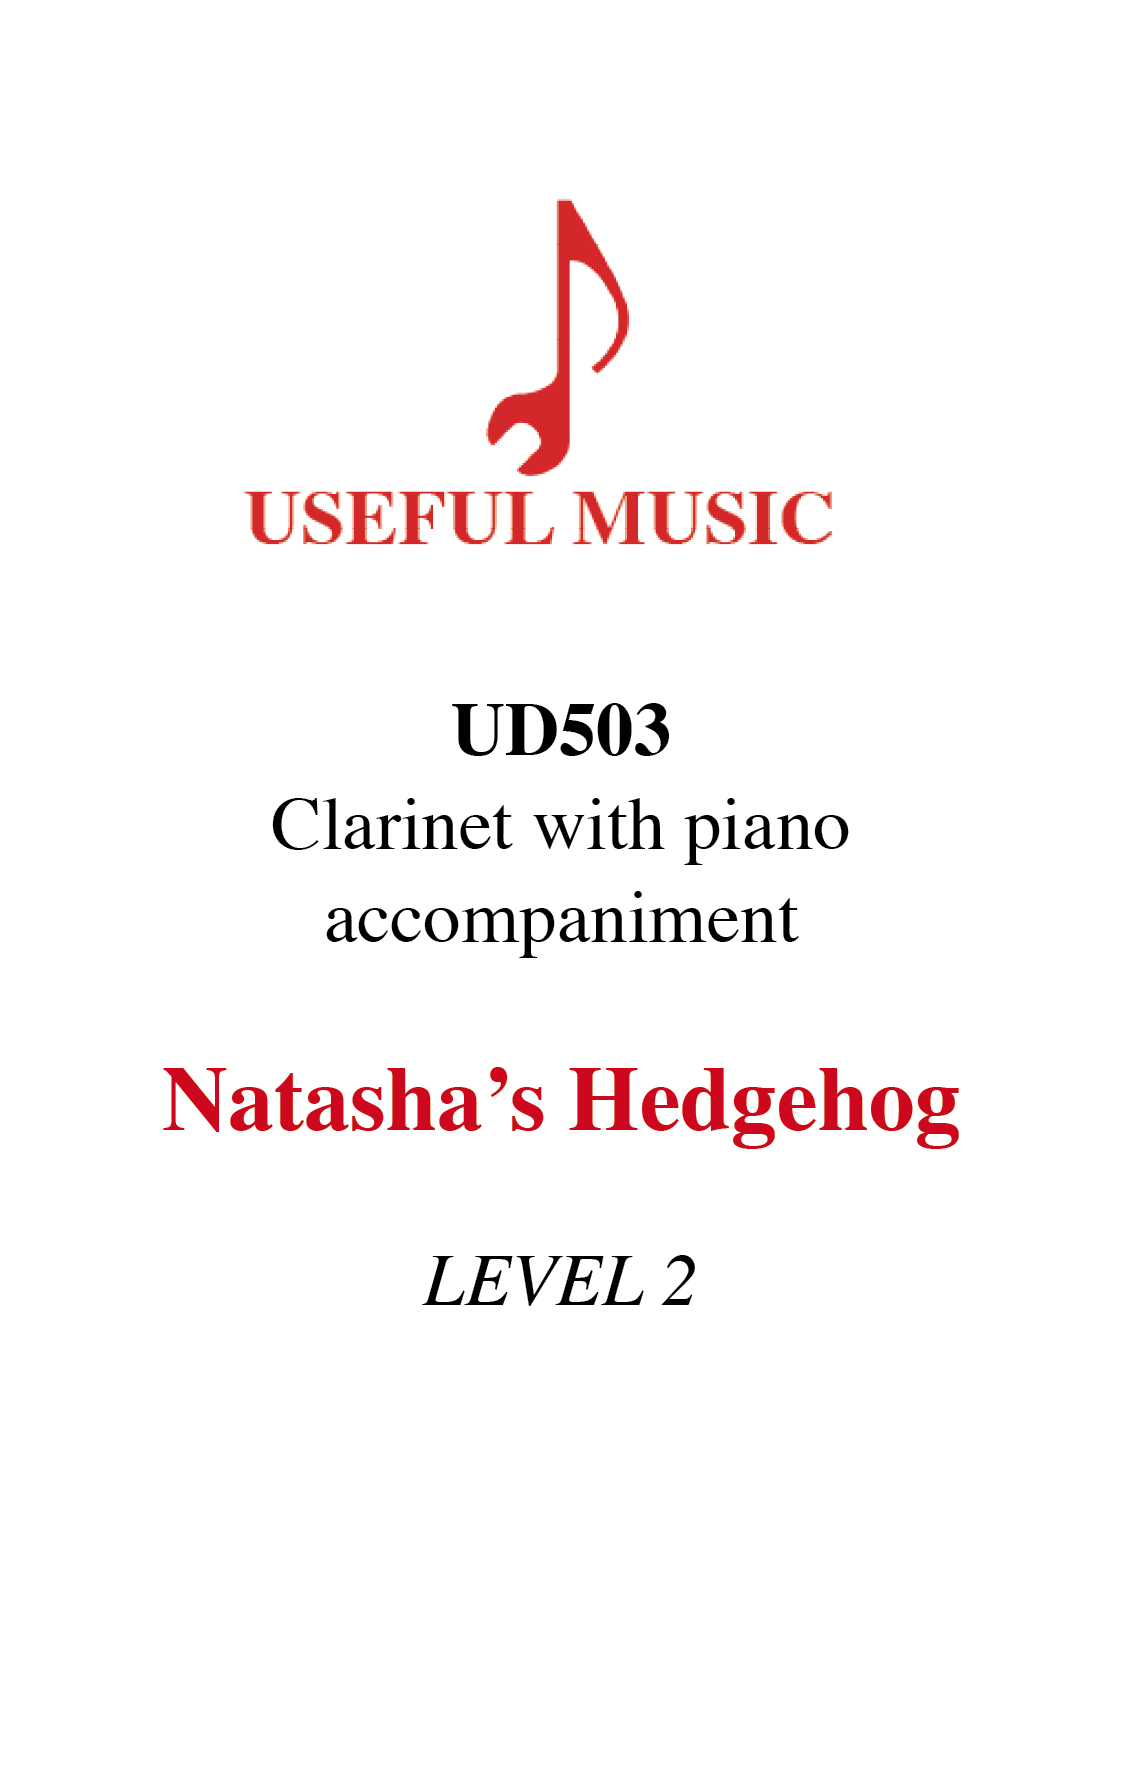 Natasha's Hedgehog - Clarinet with piano accompaniment